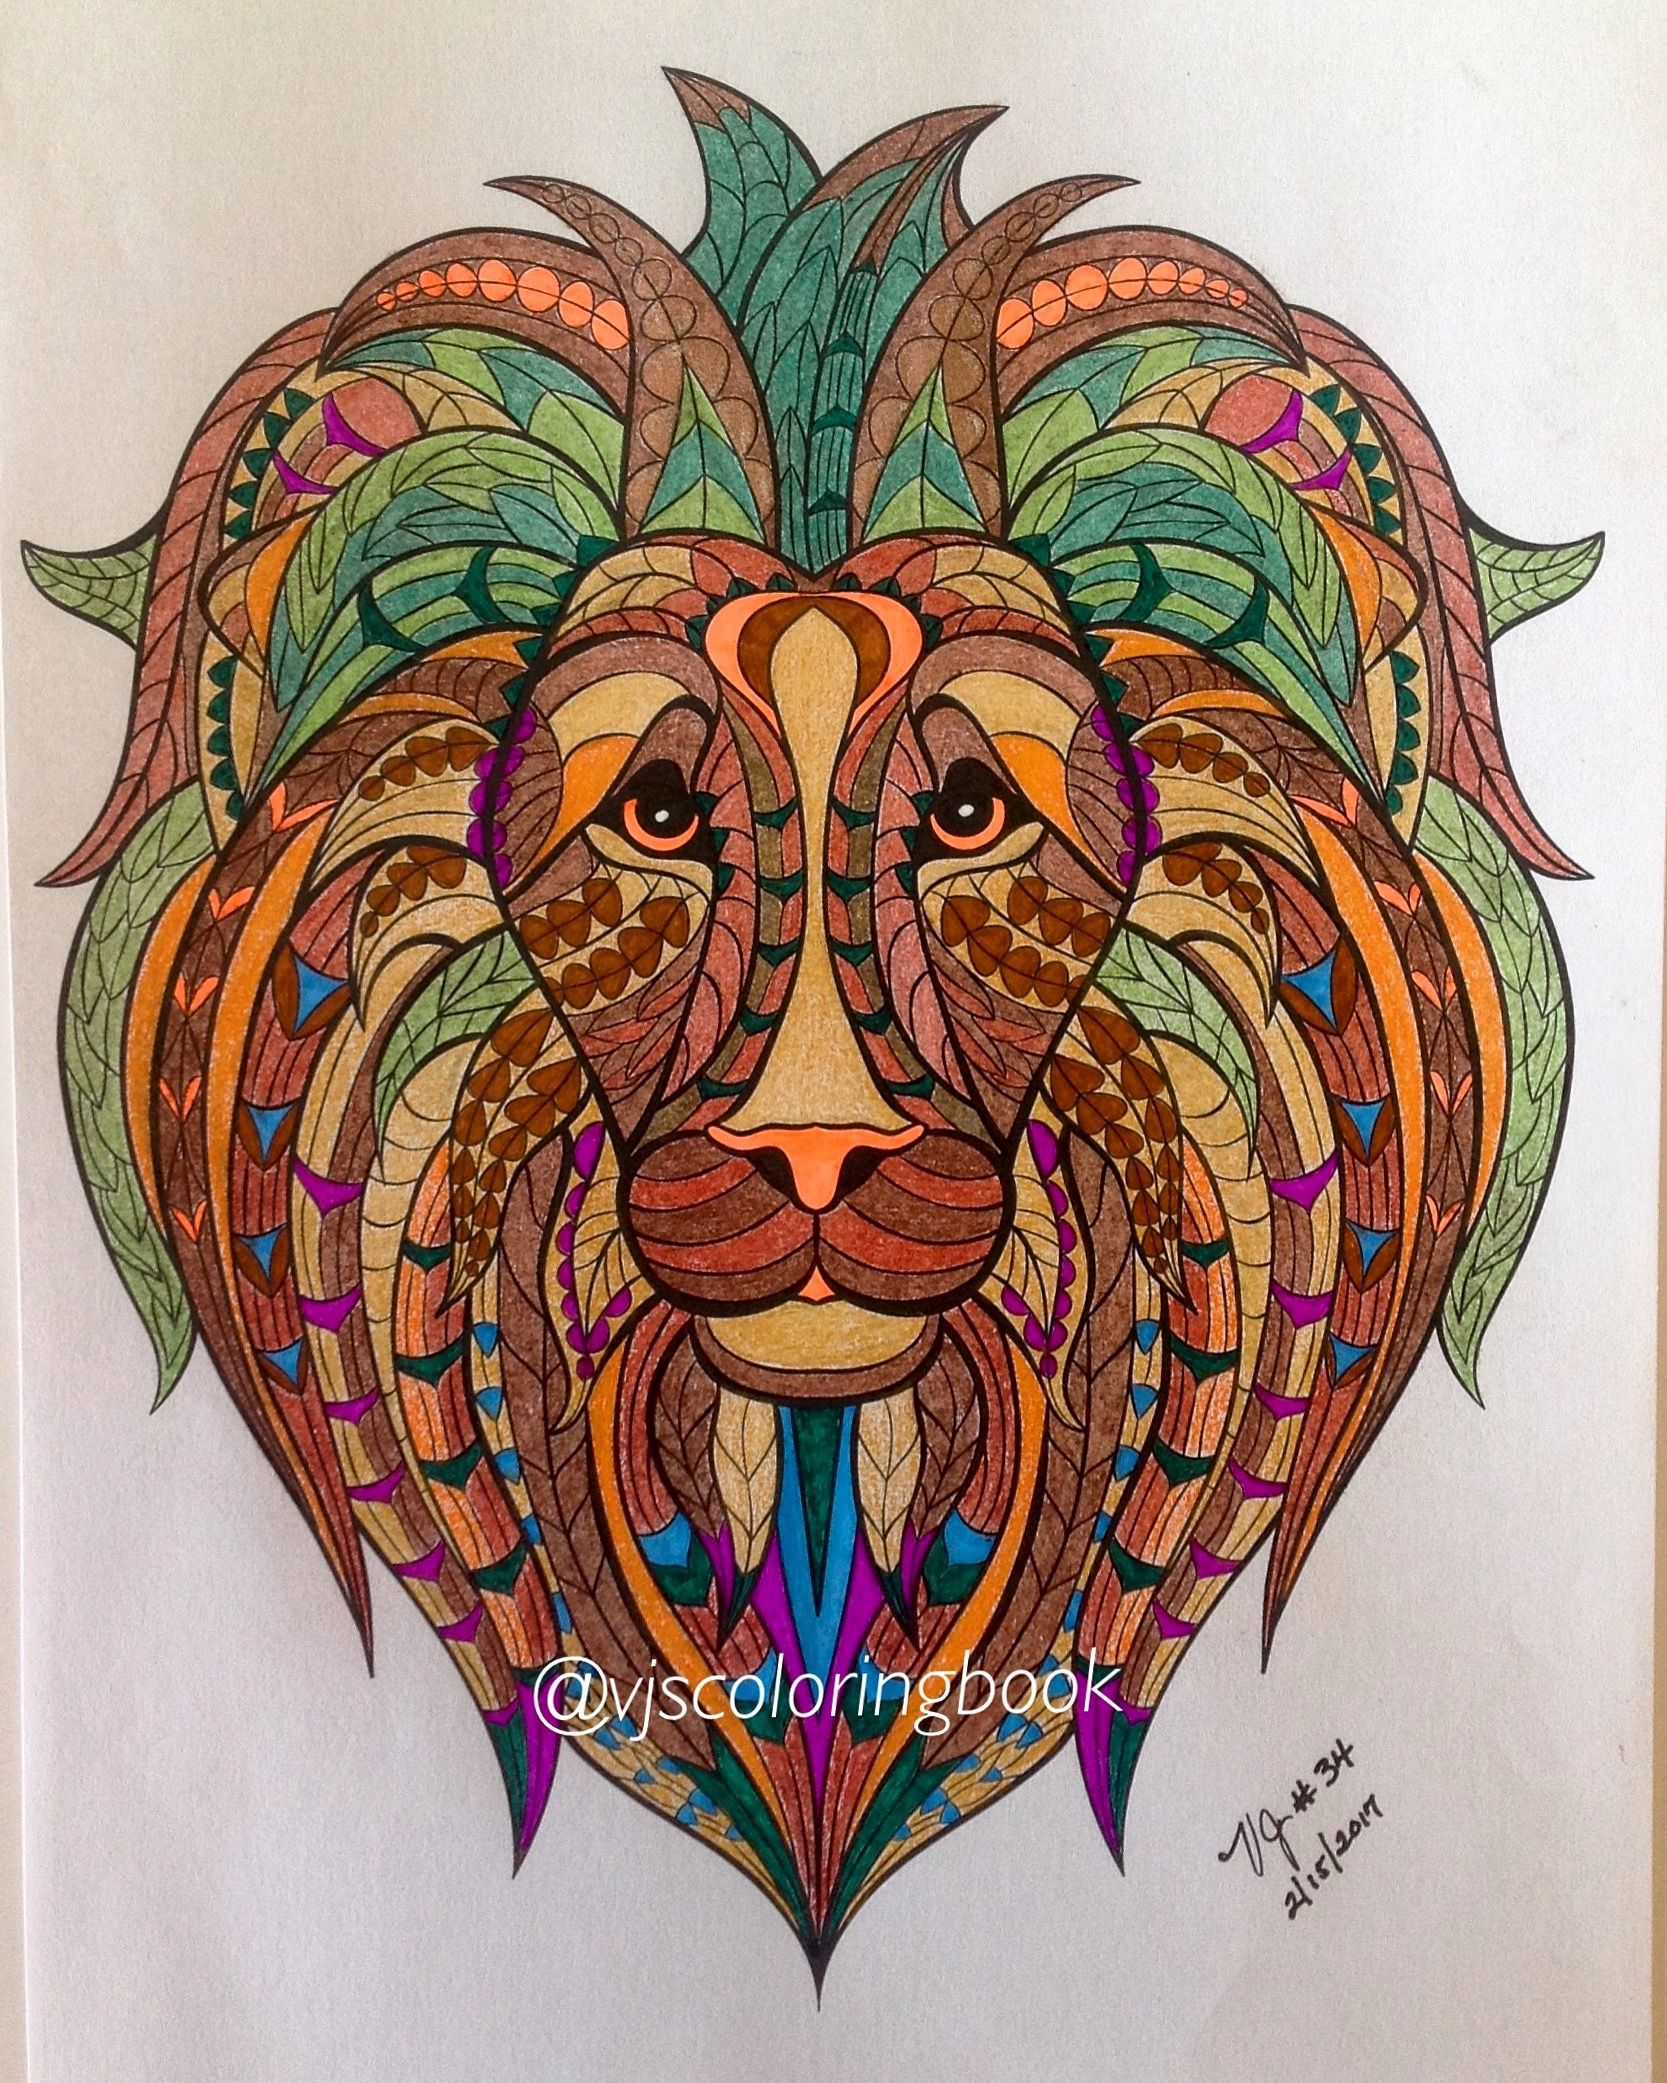 From Blue Star Stress Relieving Animal Designs Coloring Book Pticy